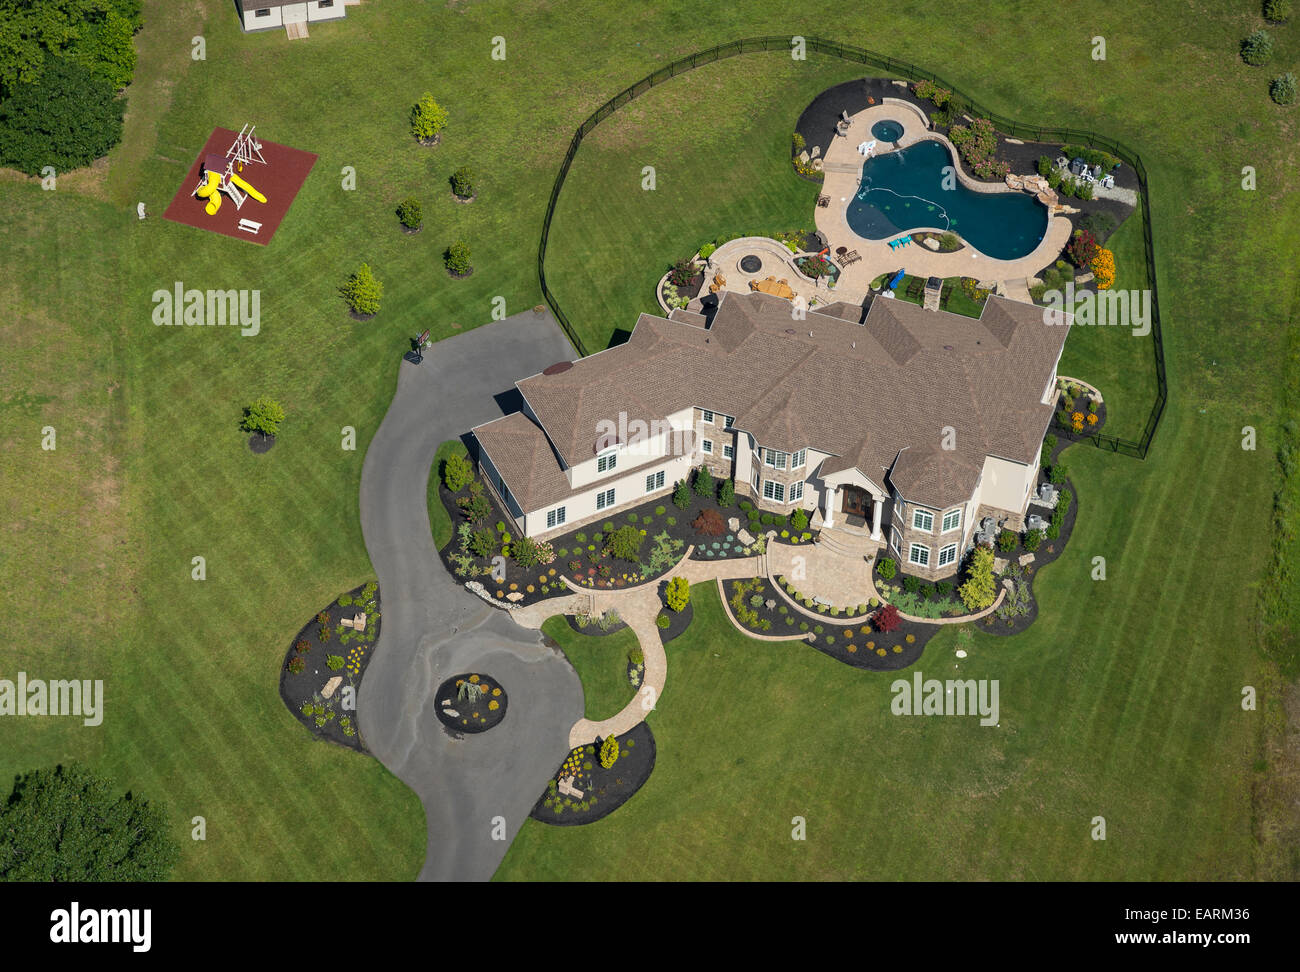 Aerial View, Large Expensive Home - Stock Image